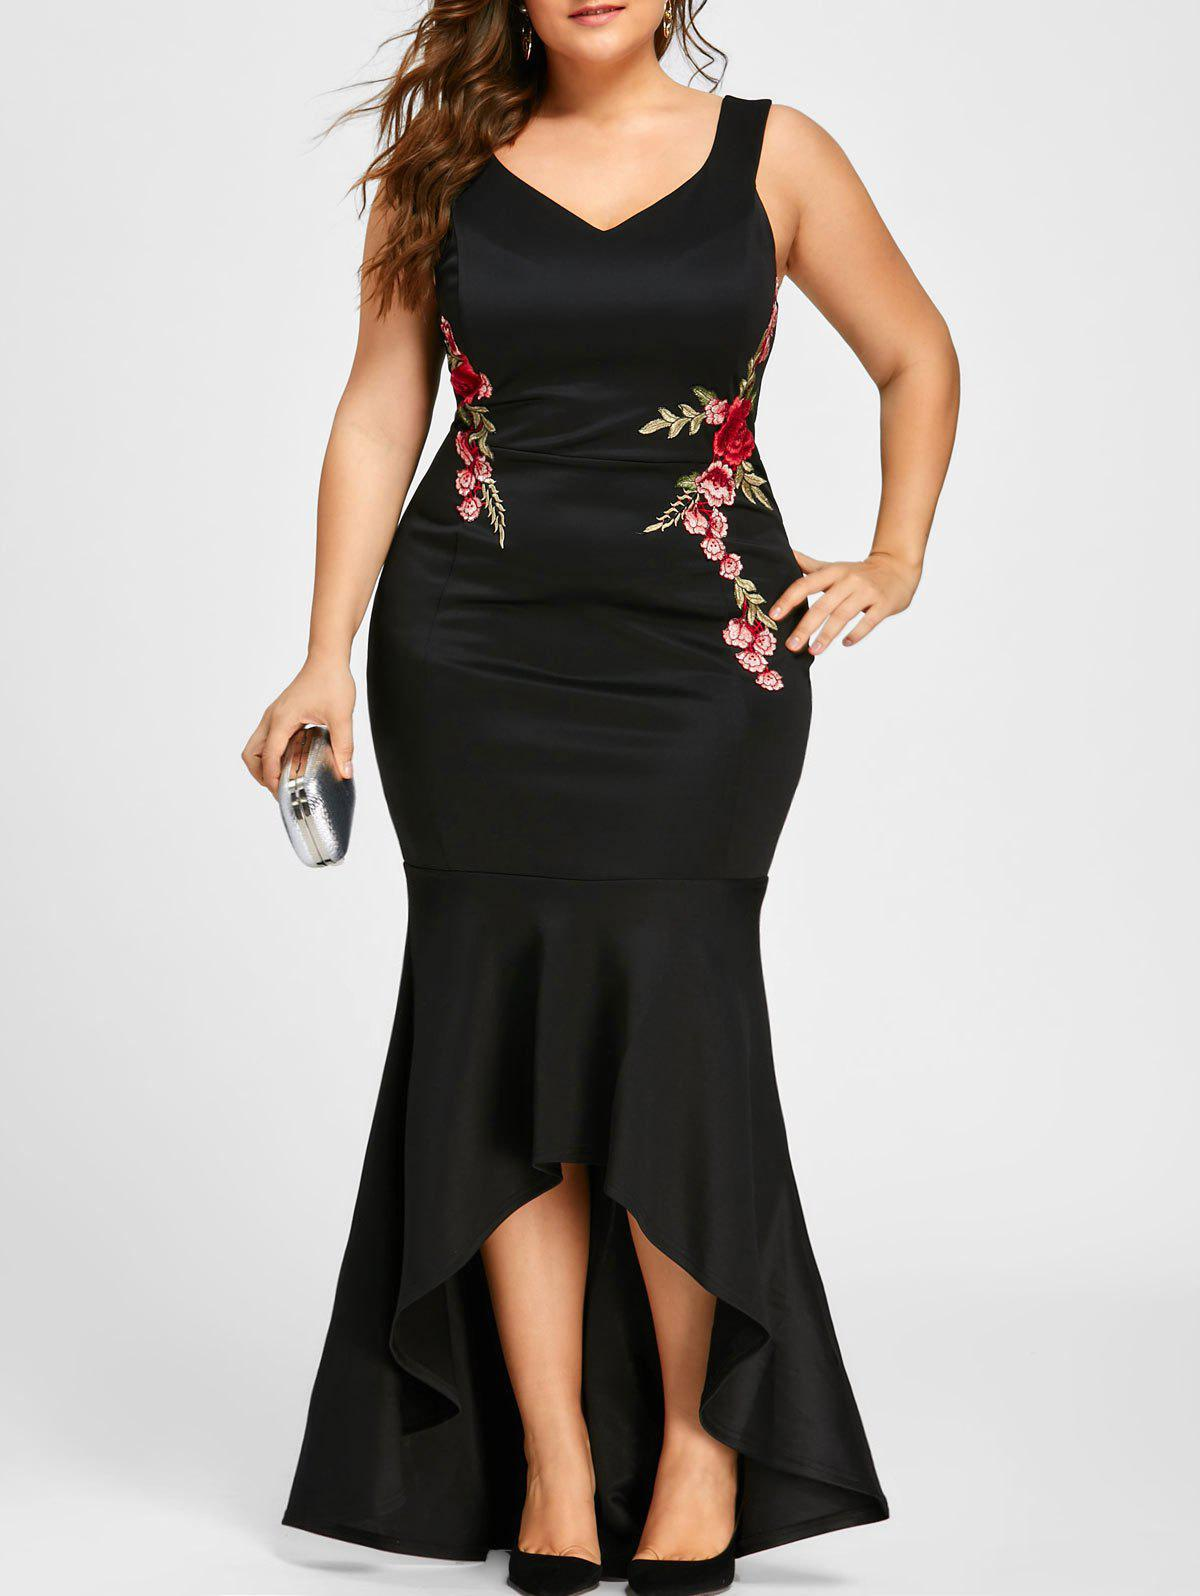 Plus Size Sleeveless Party Mermaid Engagement Dress